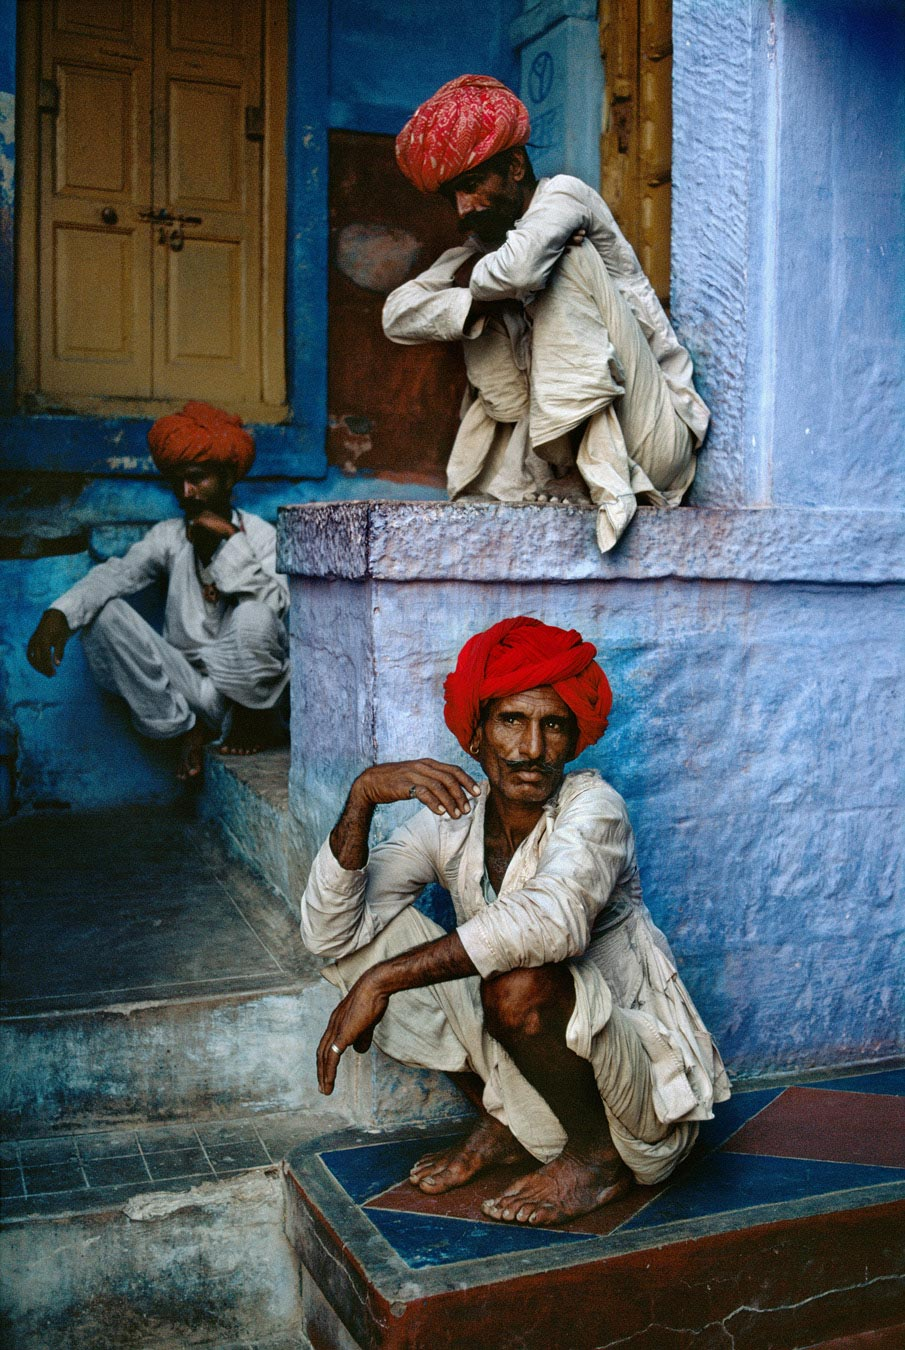 Steve-McCurry-India-Photography-7